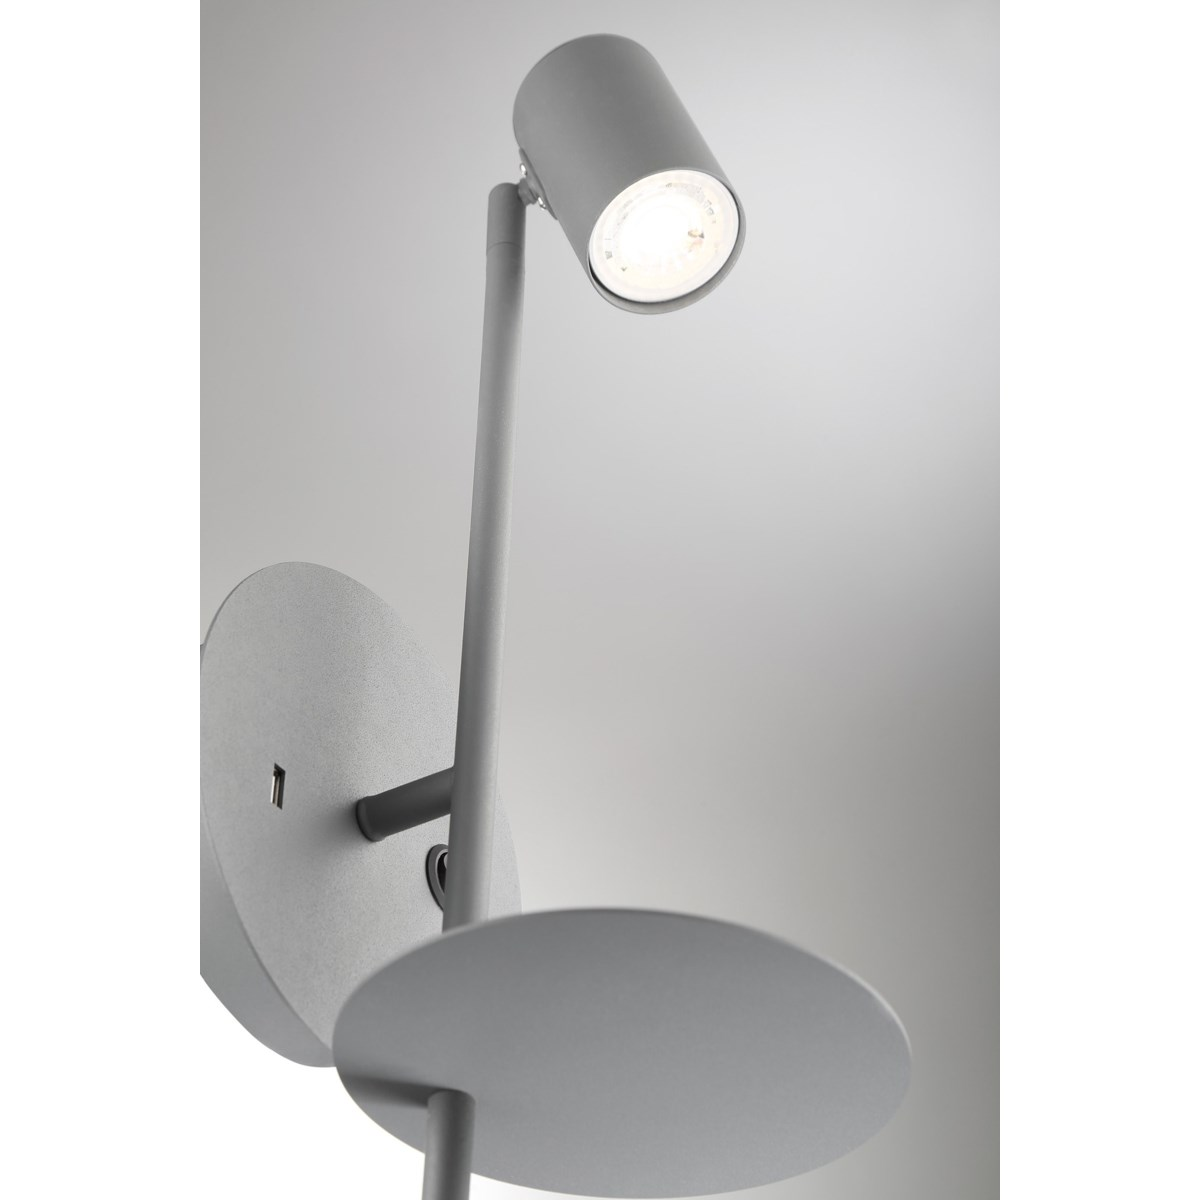 DUNCAN WALL SCONCE